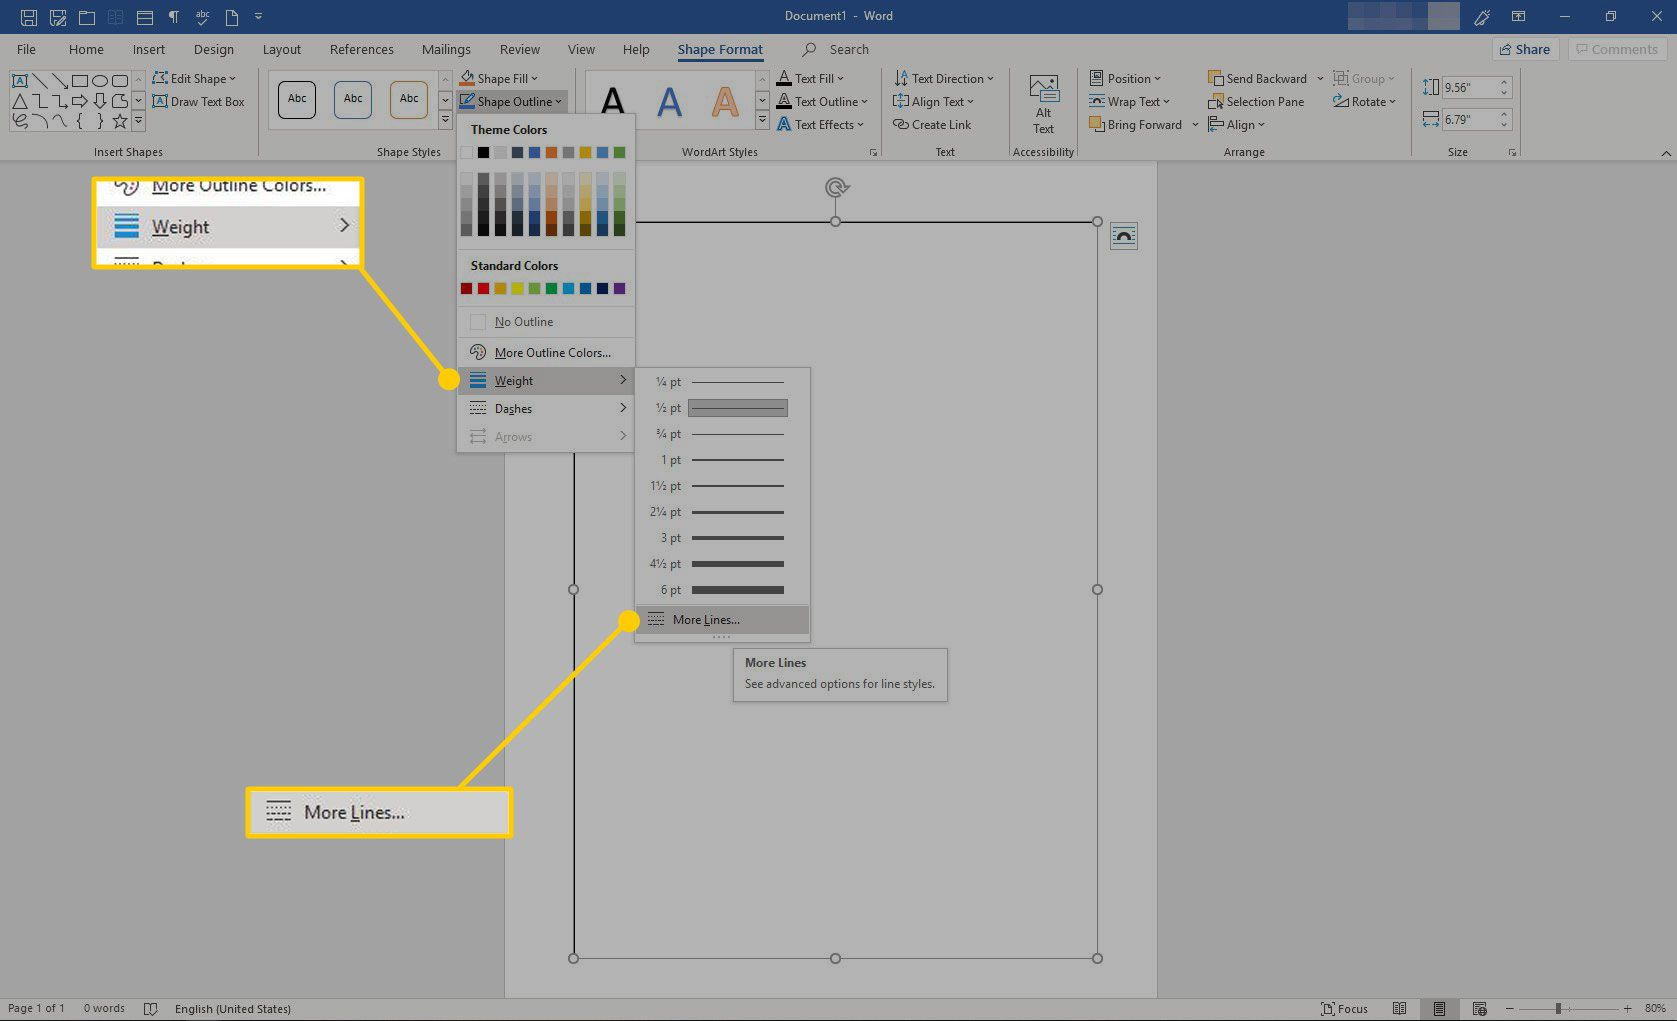 More Lines option in Word